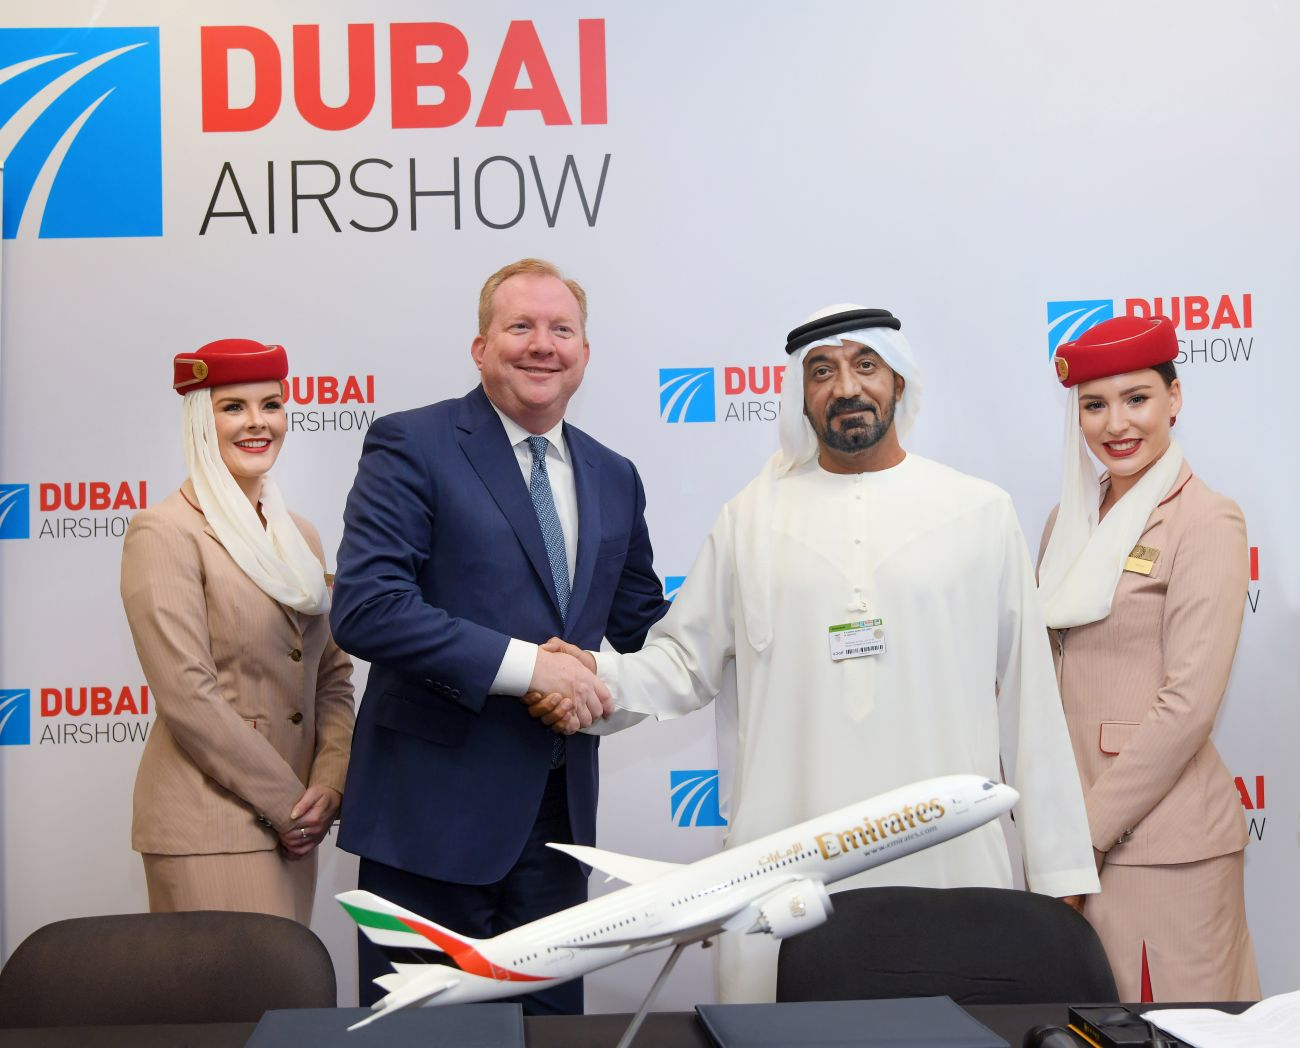 Sheikh Ahmed bin Saeed Al Maktoum, Emirates Chairman and Chief Executive, with Stanley Deal, President and Chief Executive Officer for Boeing Commercial Airplanes.